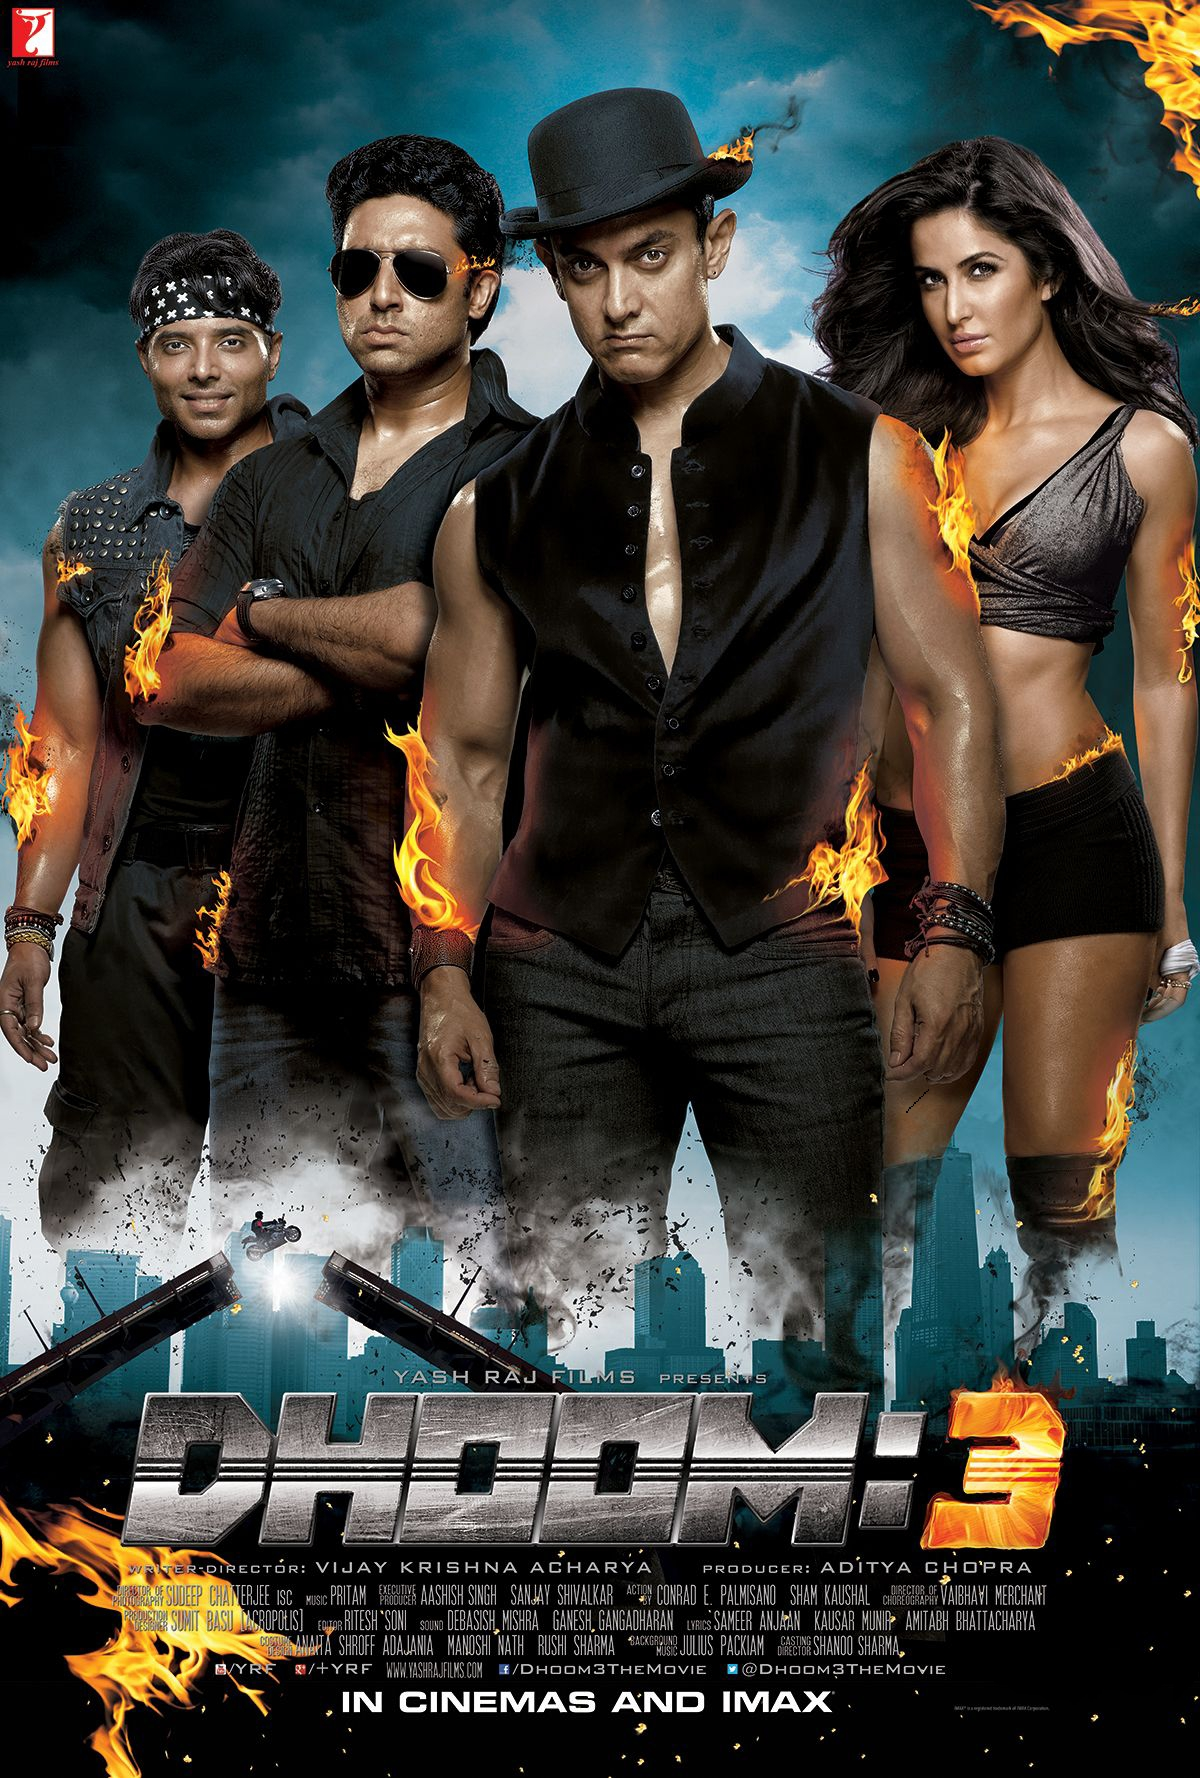 Dhoom 3 2013 1080p BluRay REMUX AVC DTS-HD MA 5.1-BdC | G- Drive | 28 GB | Parts |